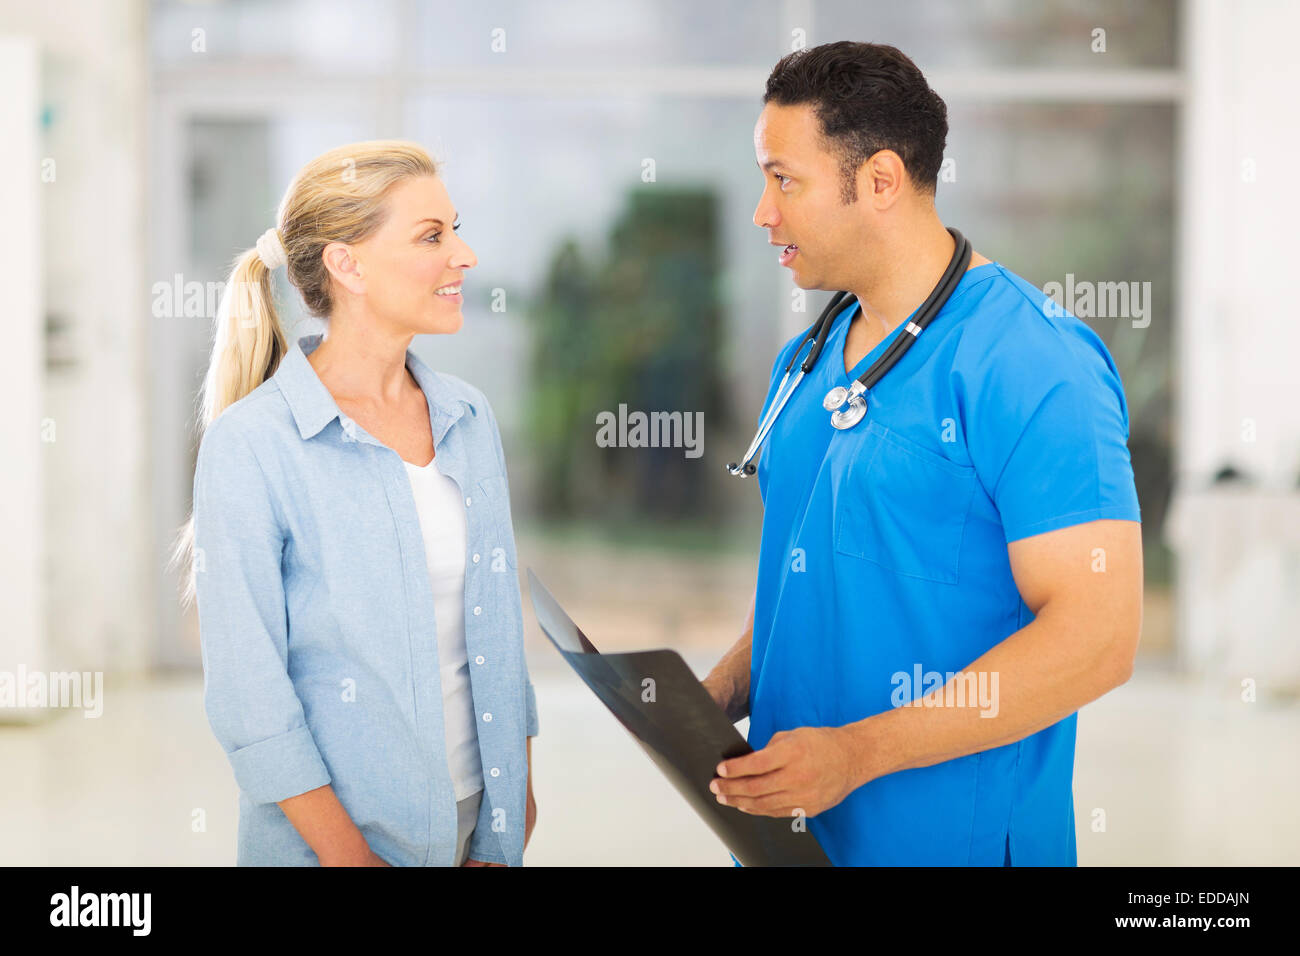 handsome mid age doctor discussing x-ray results to patient - Stock Image